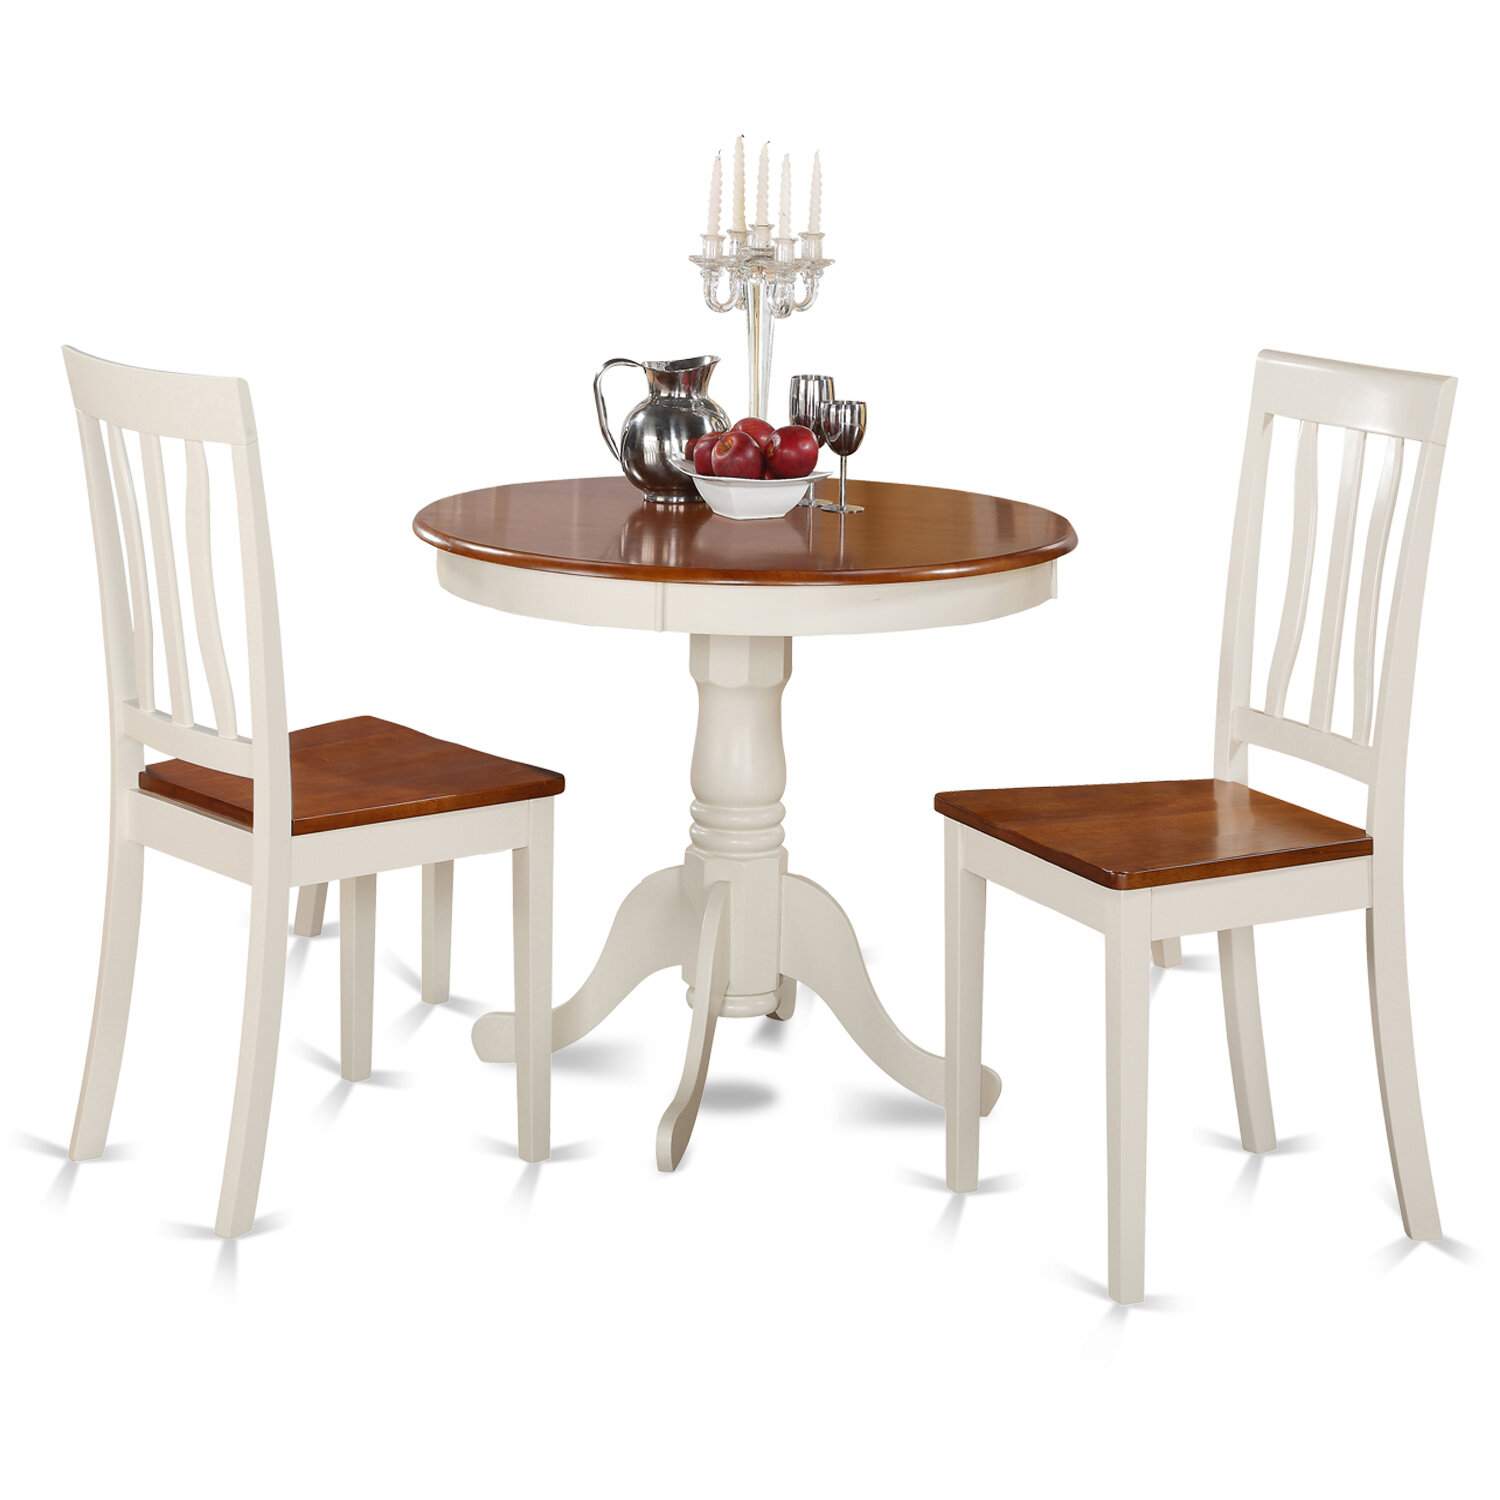 East West Furniture | Wayfair